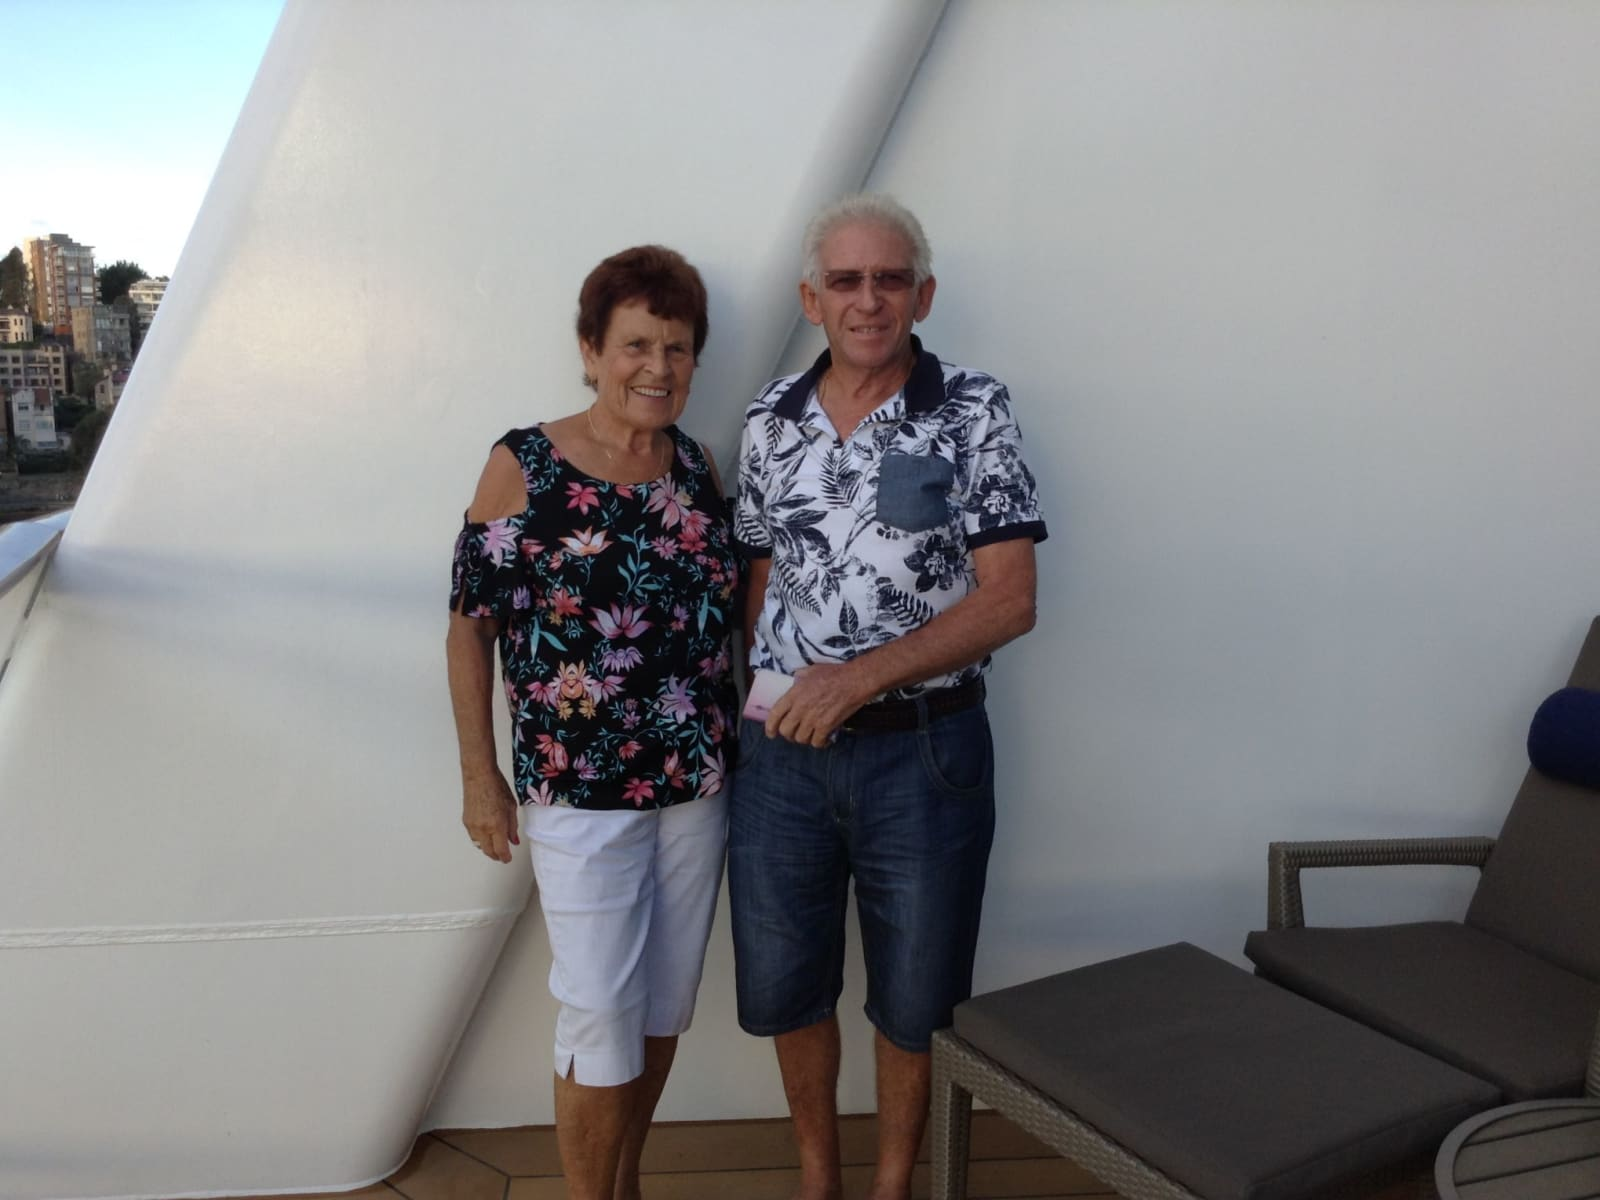 Heather & Chris from Hervey Bay, Queensland, Australia